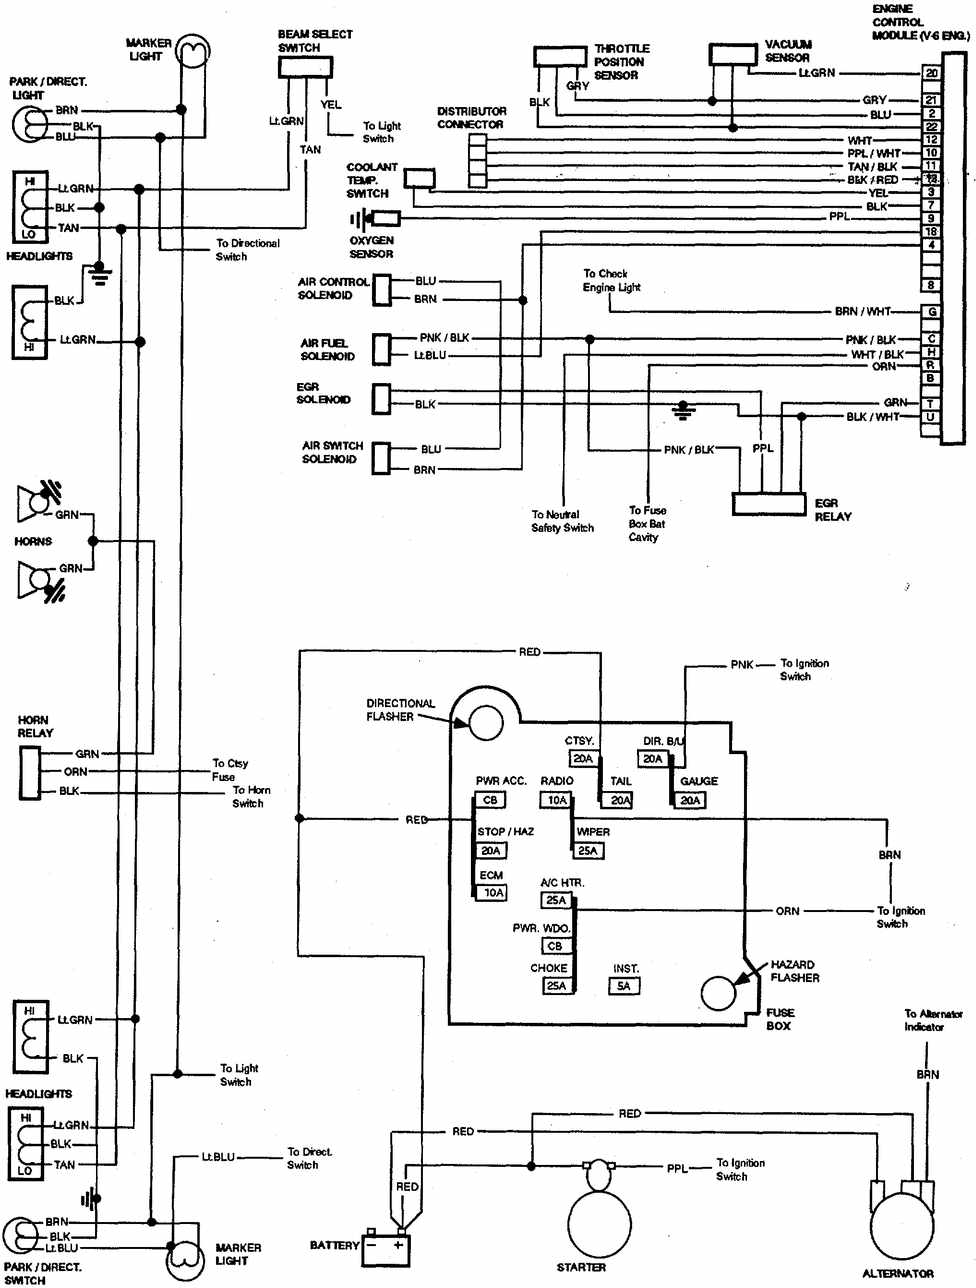 medium resolution of chevrolet v8 trucks 1981 1987 electrical wiring diagram rover 75 engine fuse box rover 75 engine